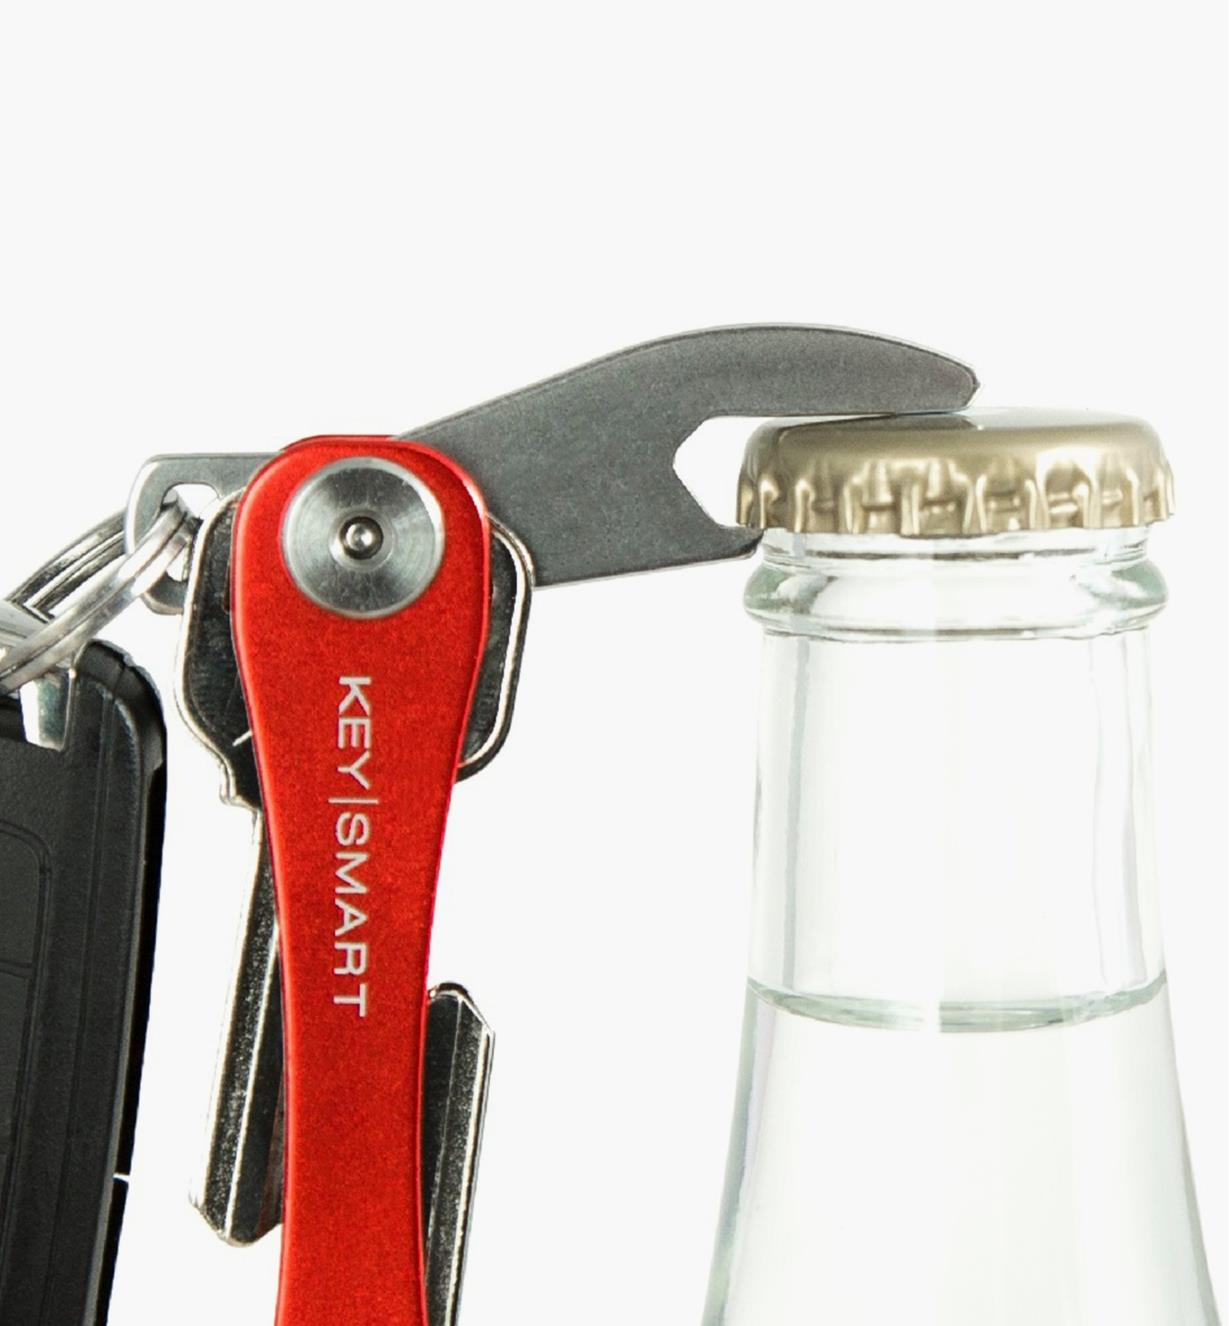 Opening a bottle cap with the KeySmart bottle opener